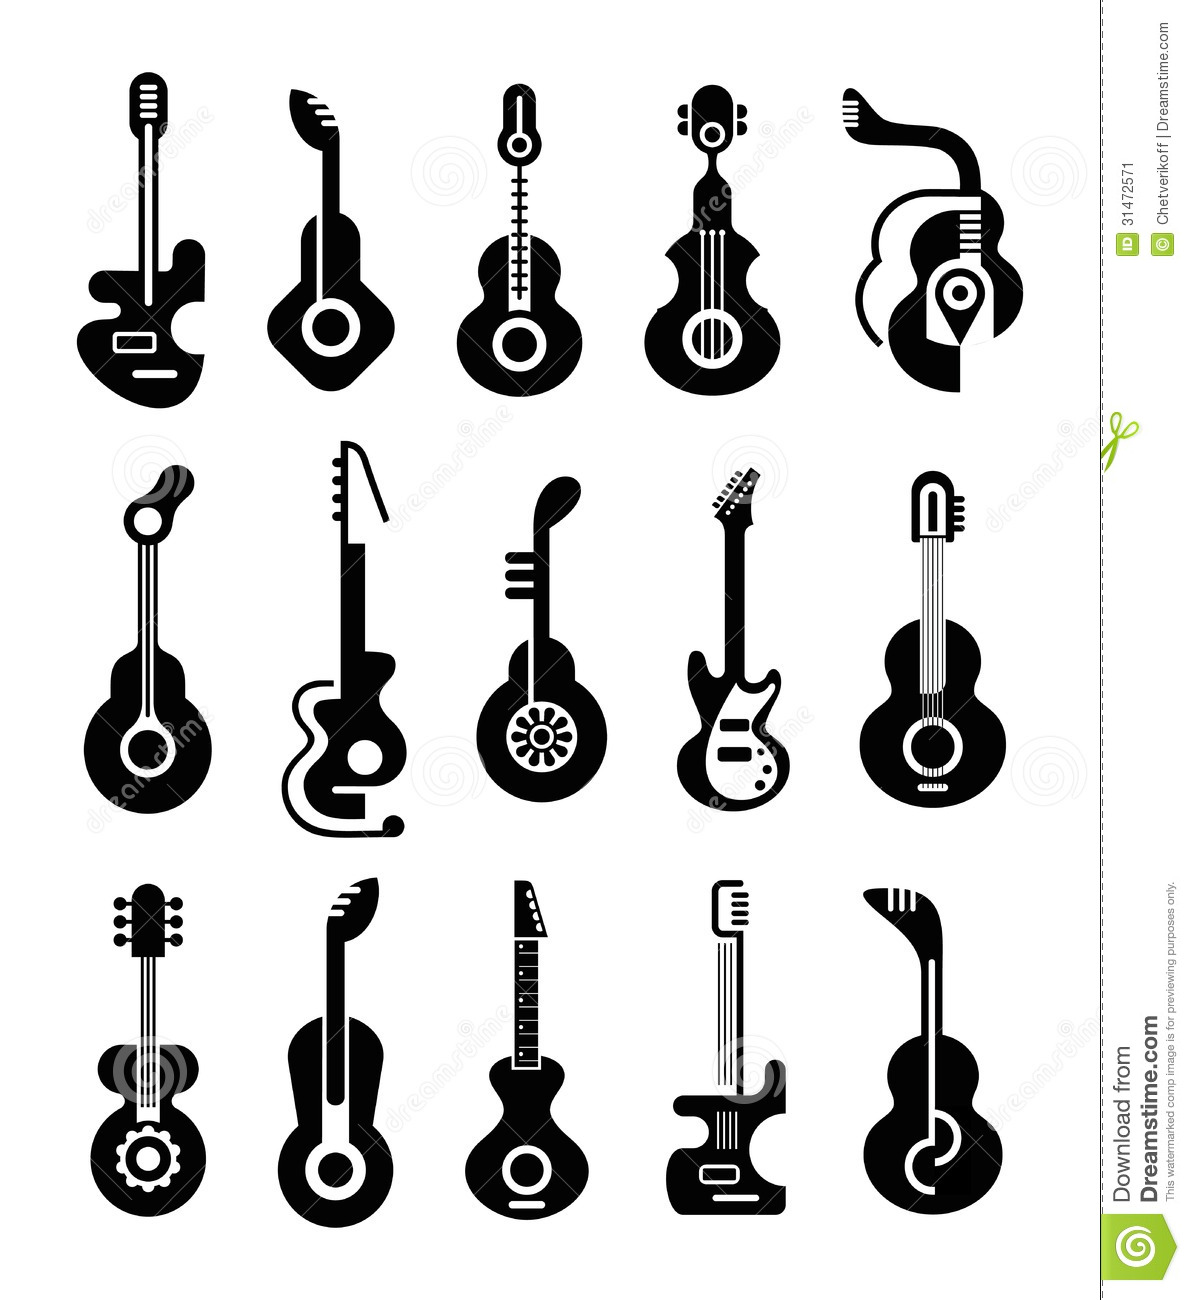 Guitar Icons Stock Vector Illustration Of Electric Icon